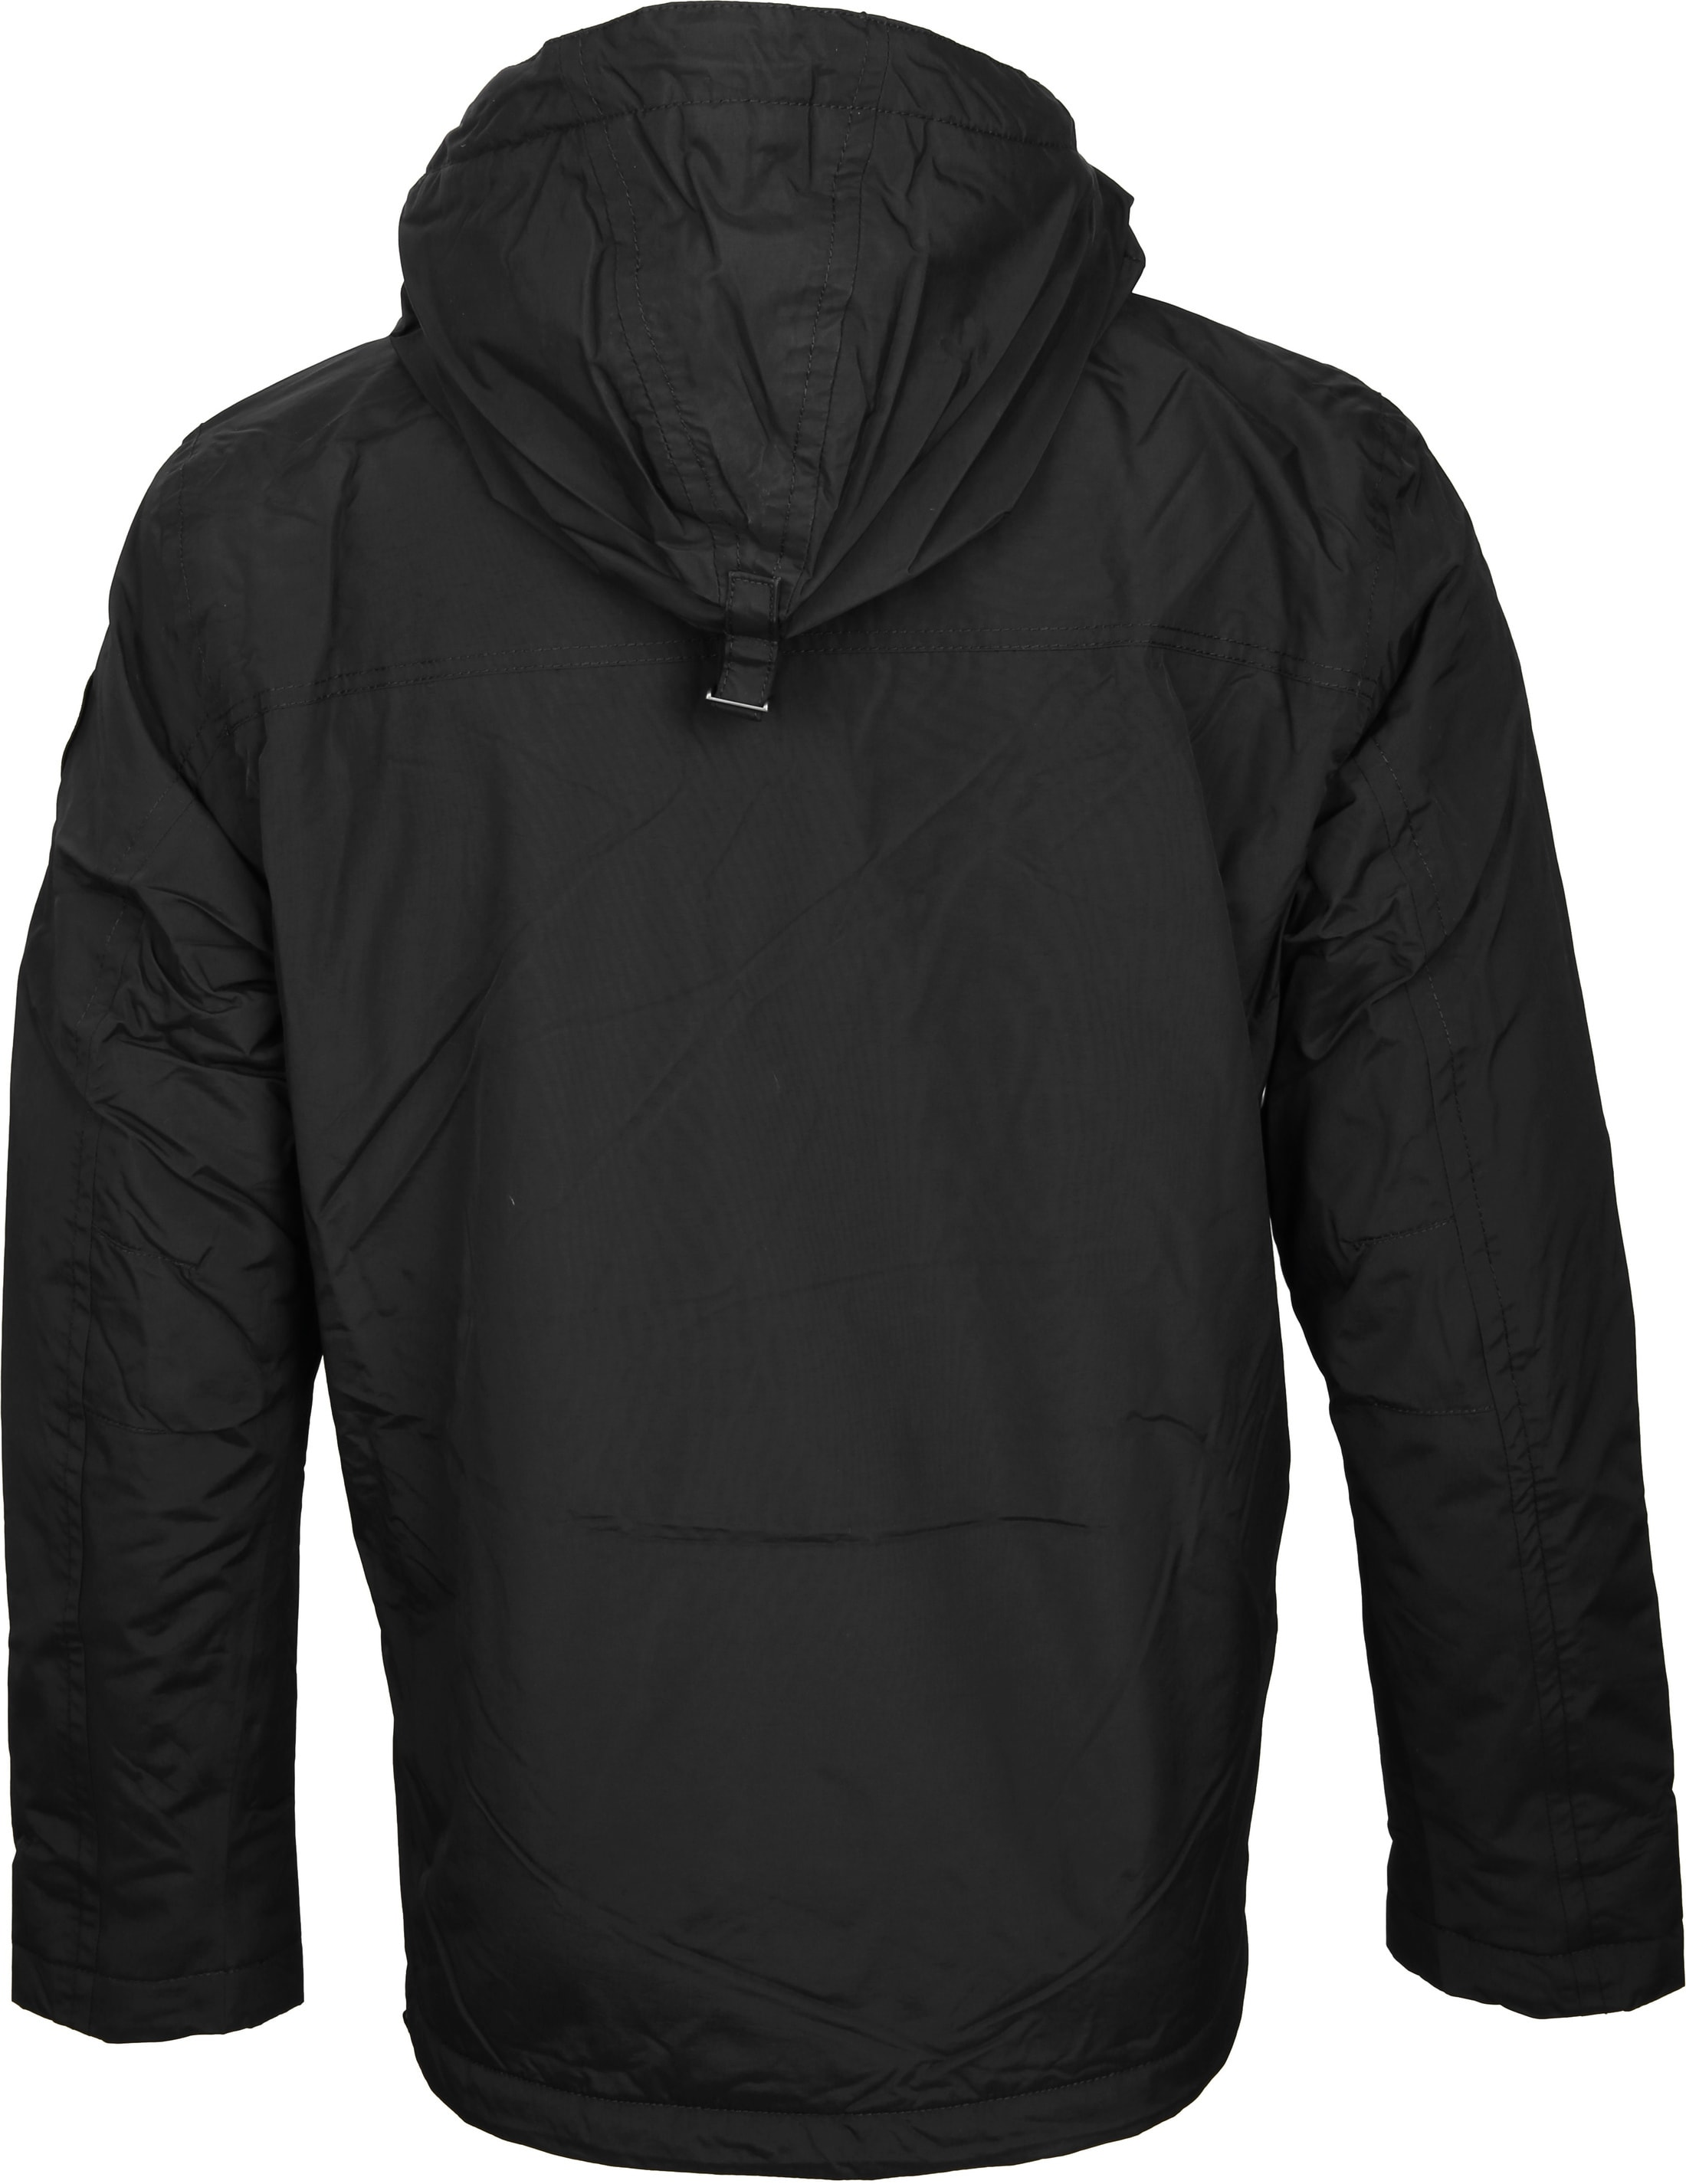 Napapijri Anorak Rainforest Pocket Black foto 5